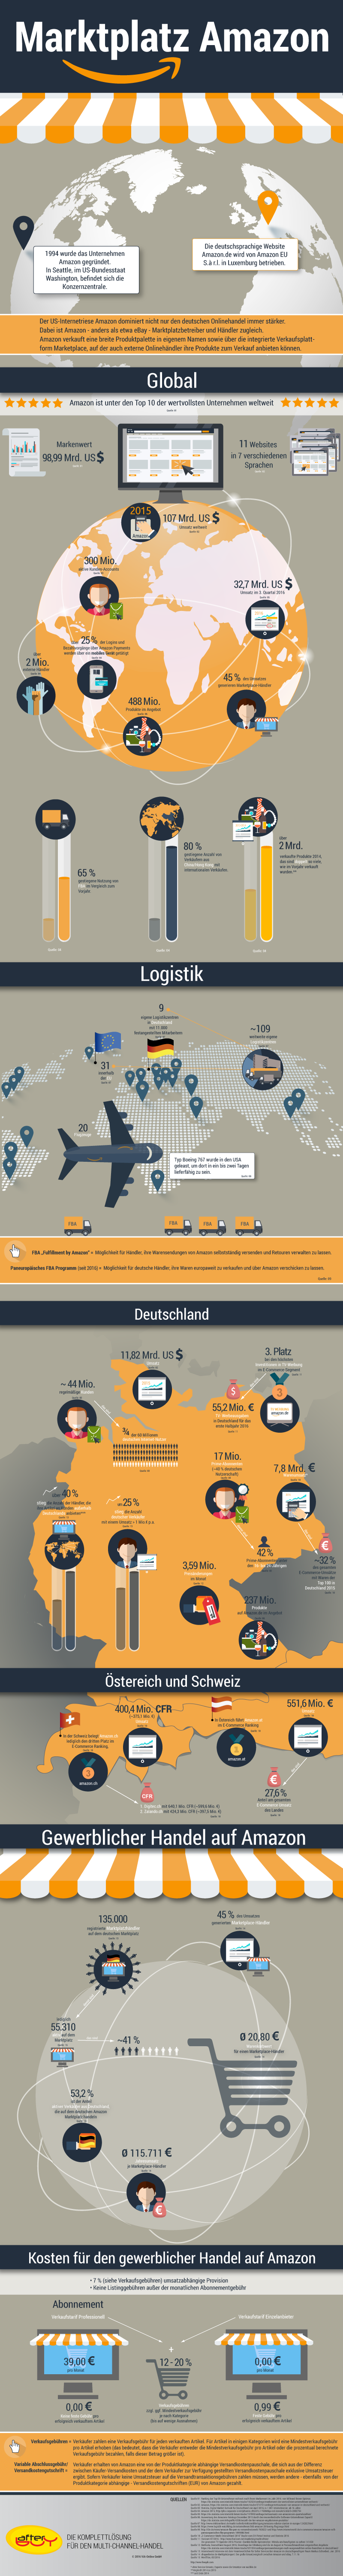 Amazon Marktplatz Infografik - Quelle: Afterbuy